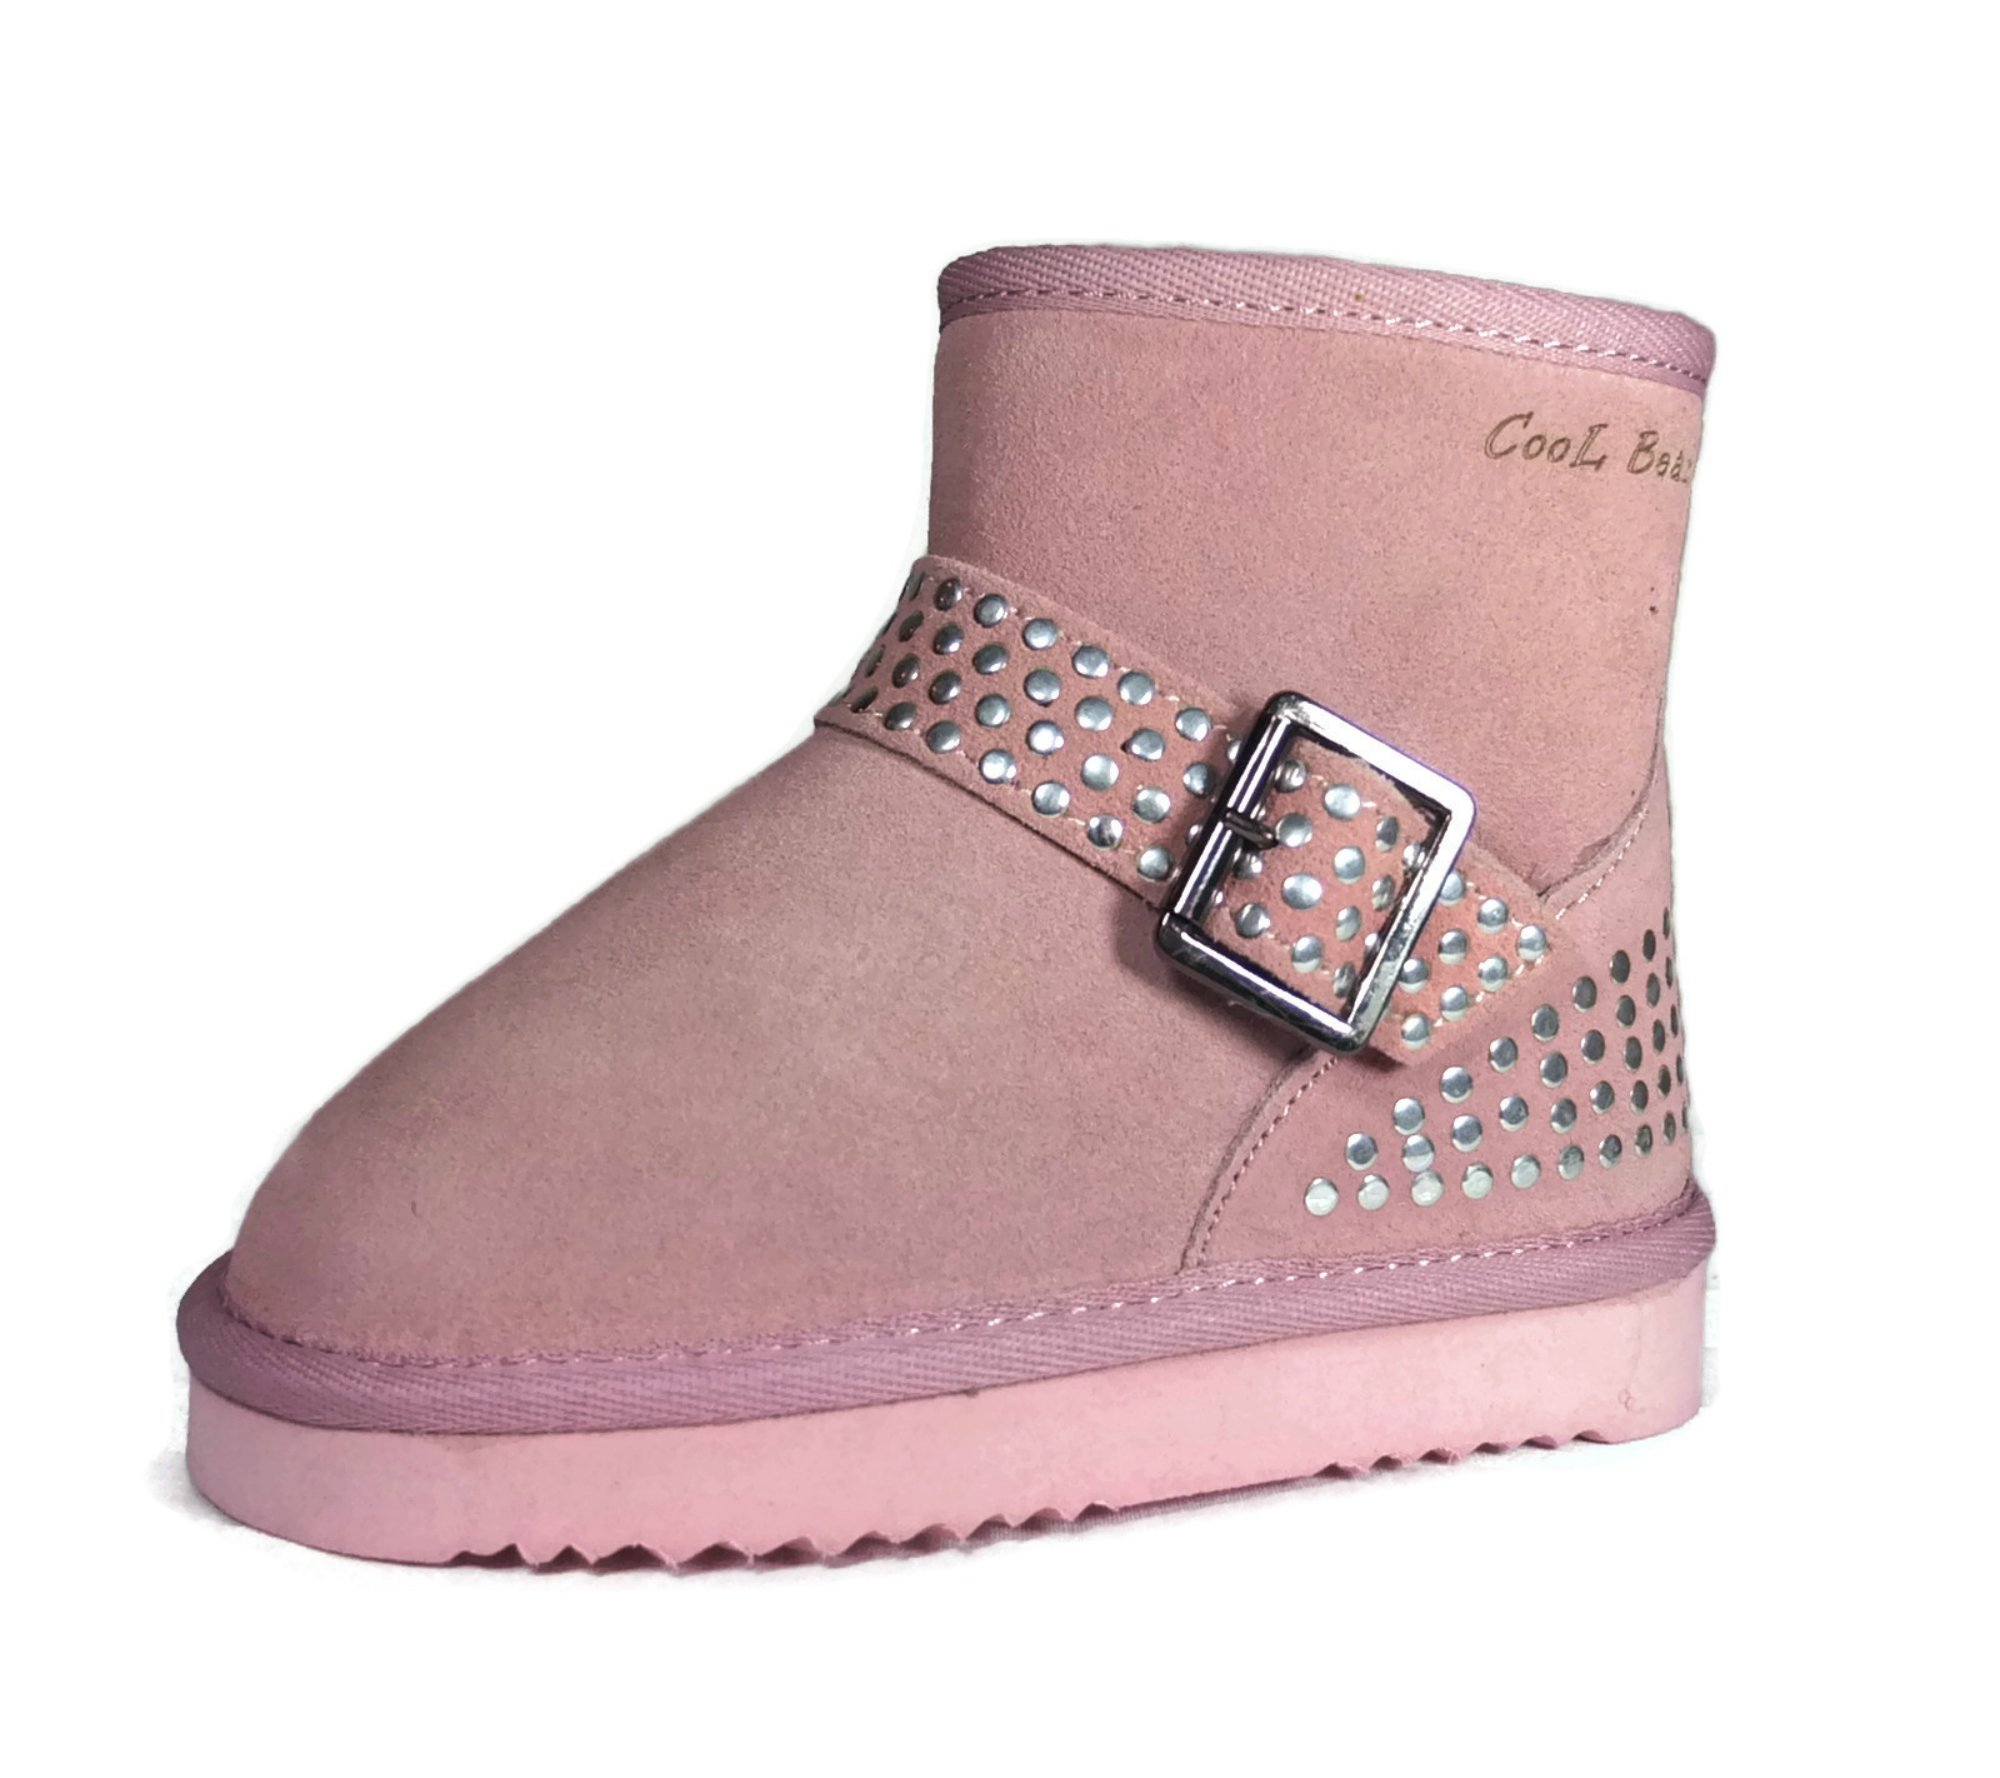 Cool Beans Girls Warm Sheep Fur Winter Snow Boots, Genuine Leather ( Toddler / Little Kid size 9 )